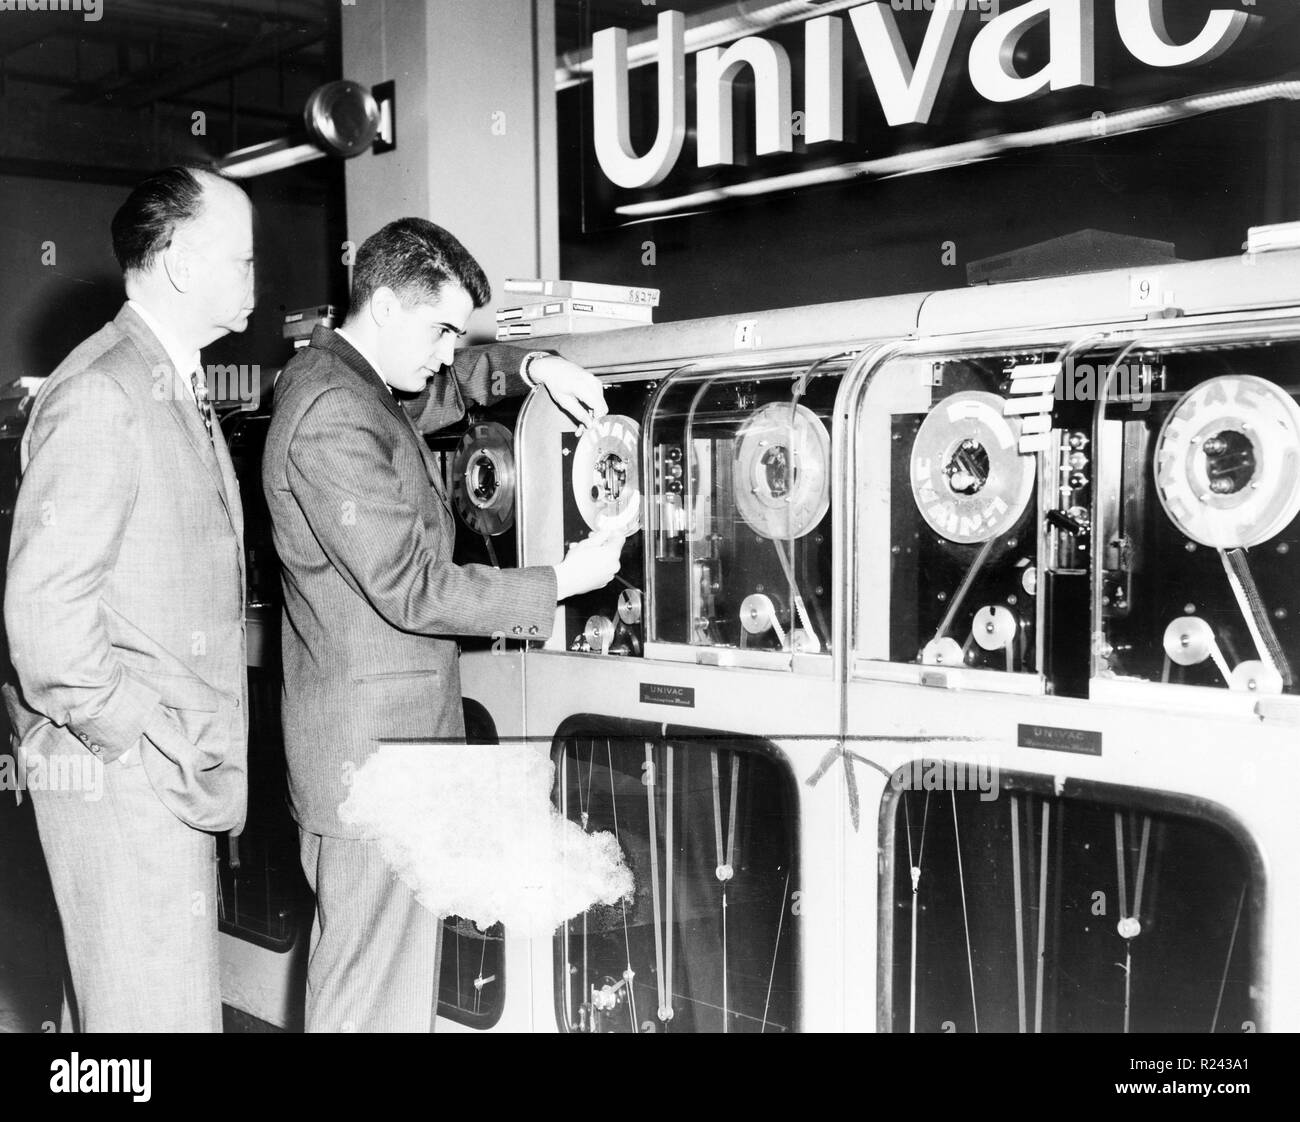 One man looks on as another man prepares Univac computer to predict a winning horse in a race c.1955 - Stock Image